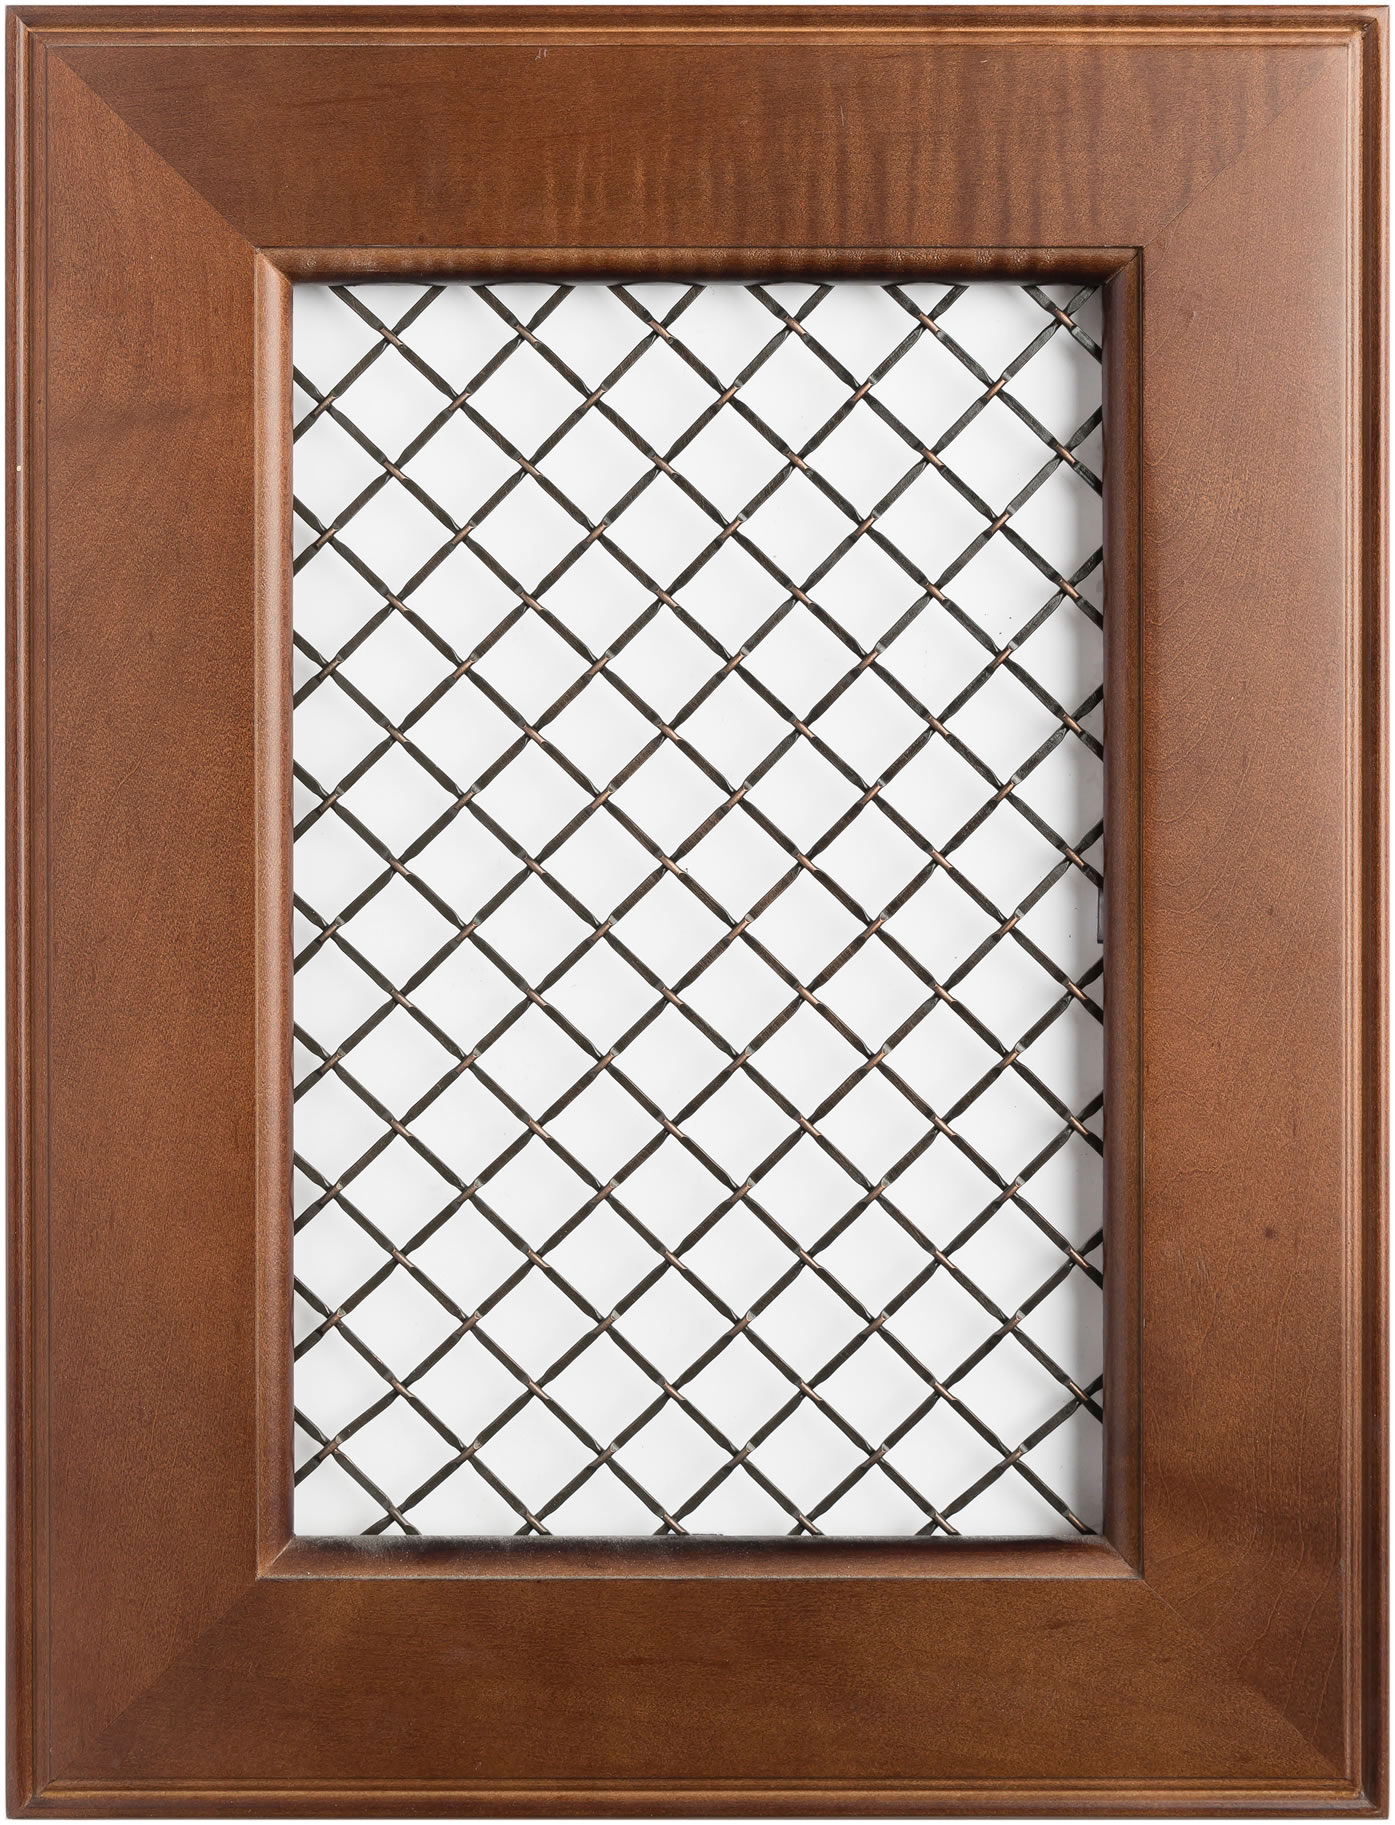 Wire Mesh For Cabinets Wire Mesh Wood Hollow Cabinets